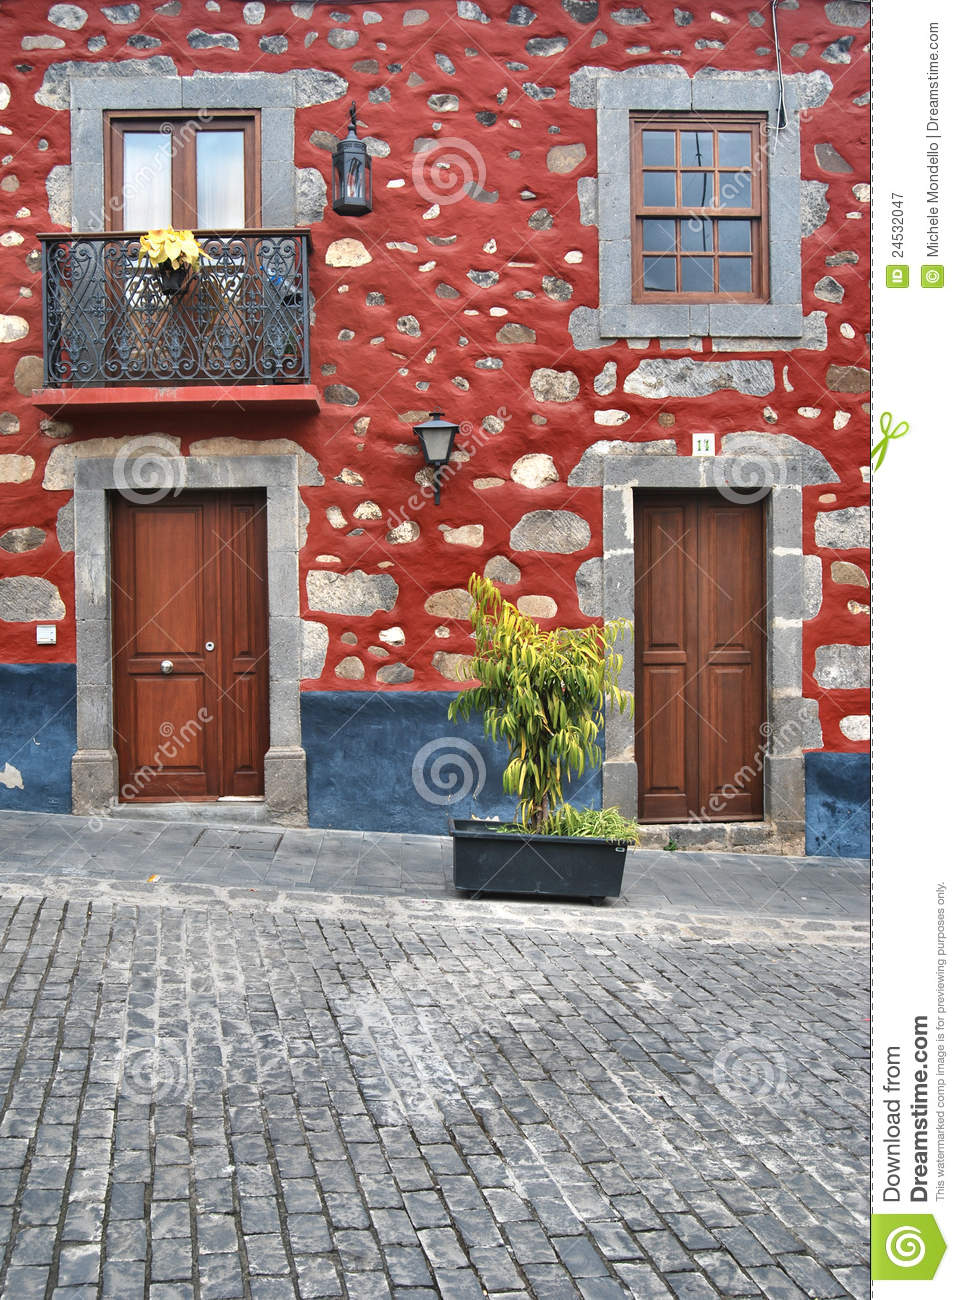 Typical house in gran canaria royalty free stock - Houses in gran canaria ...